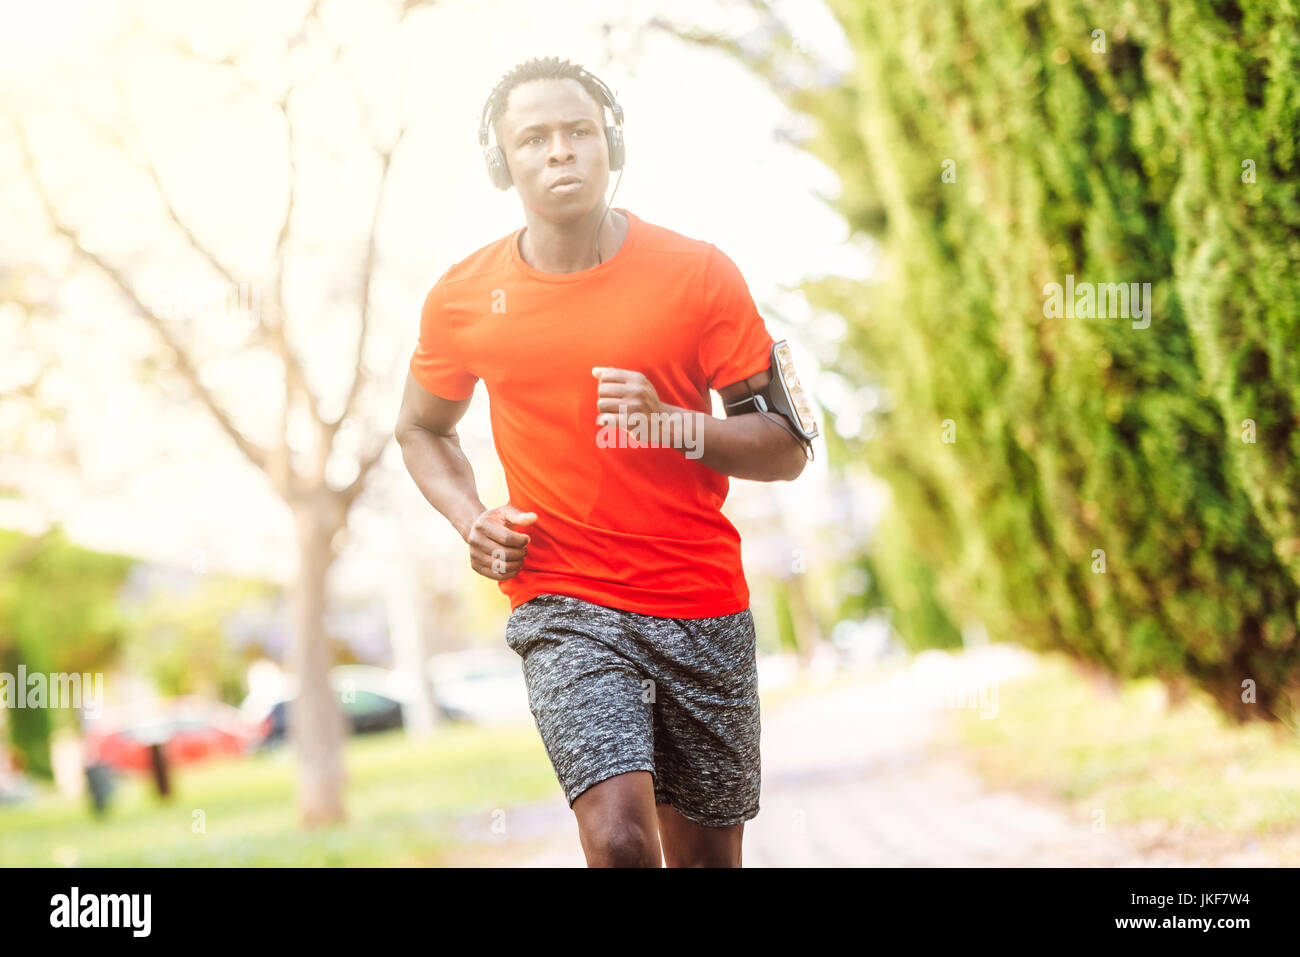 Portrait of man in sportswear running through a park listening music with headphones - Stock Image